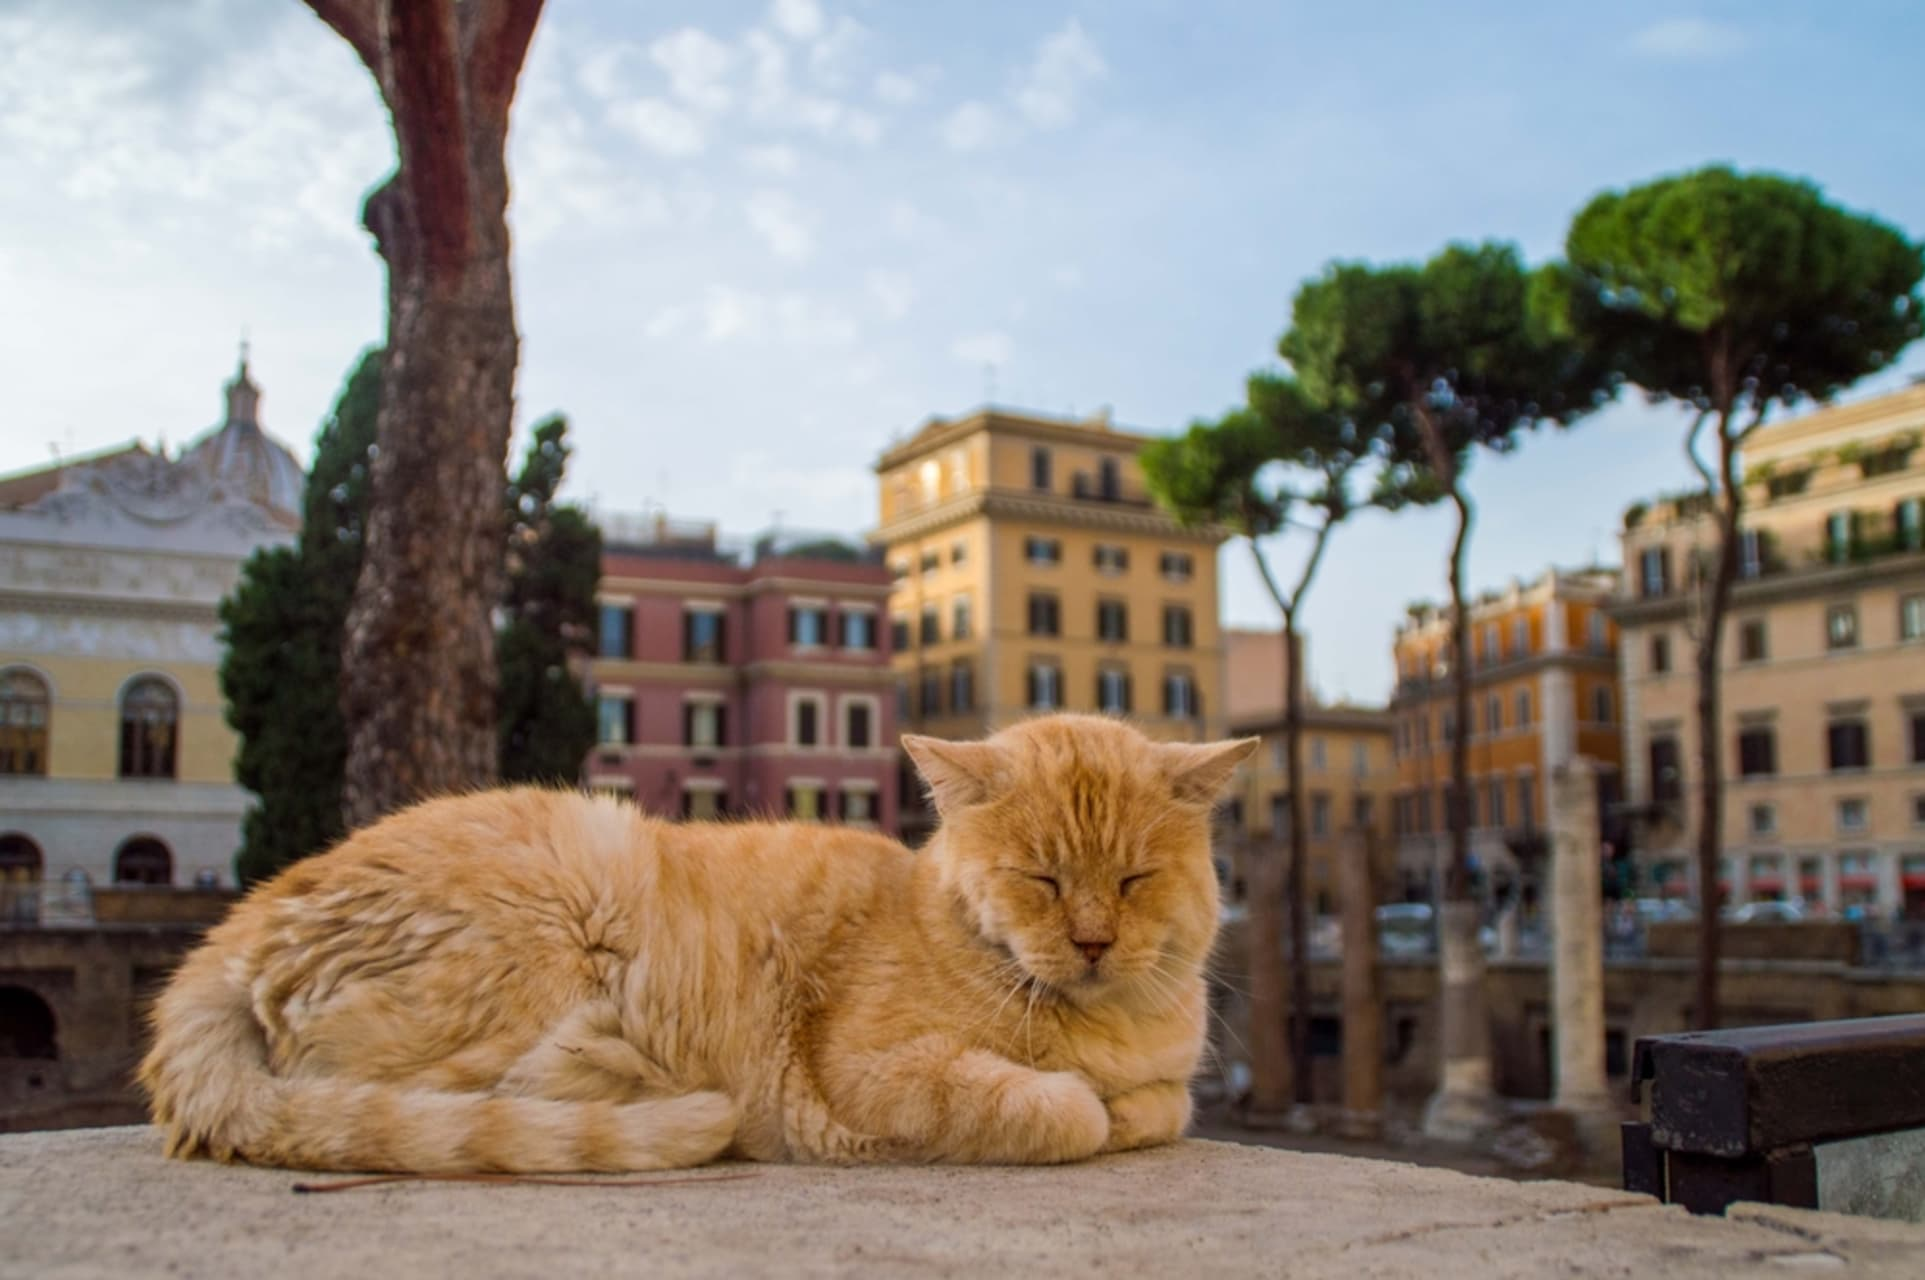 Rome - Ides of March, Julius Caesar & the cats of Rome